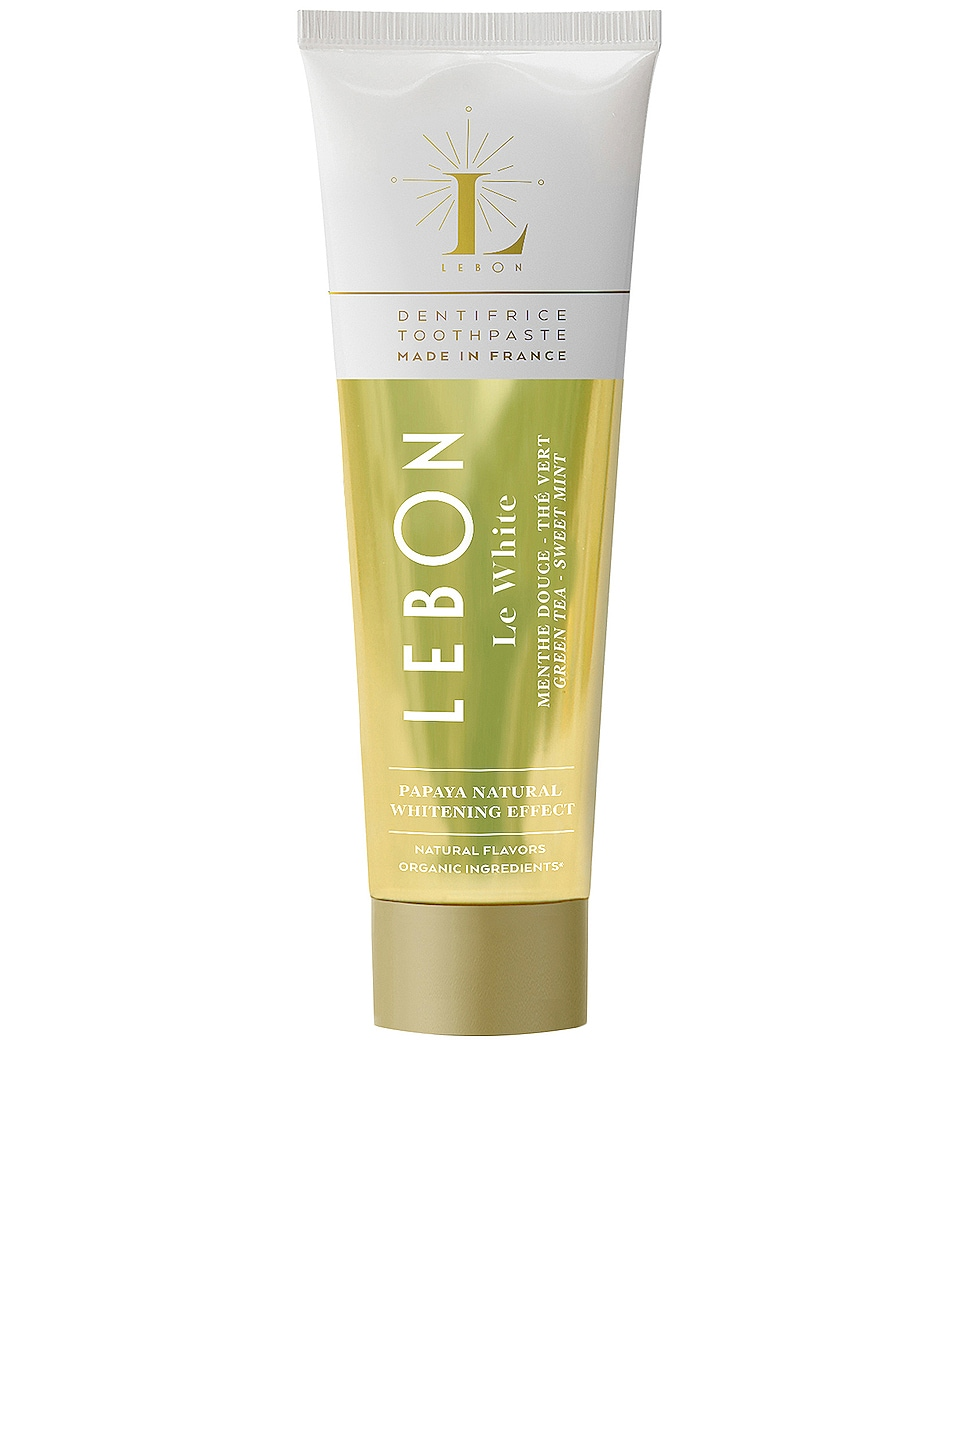 LEBON Travel Le White Toothpaste in Sweet Mint & Green Tea